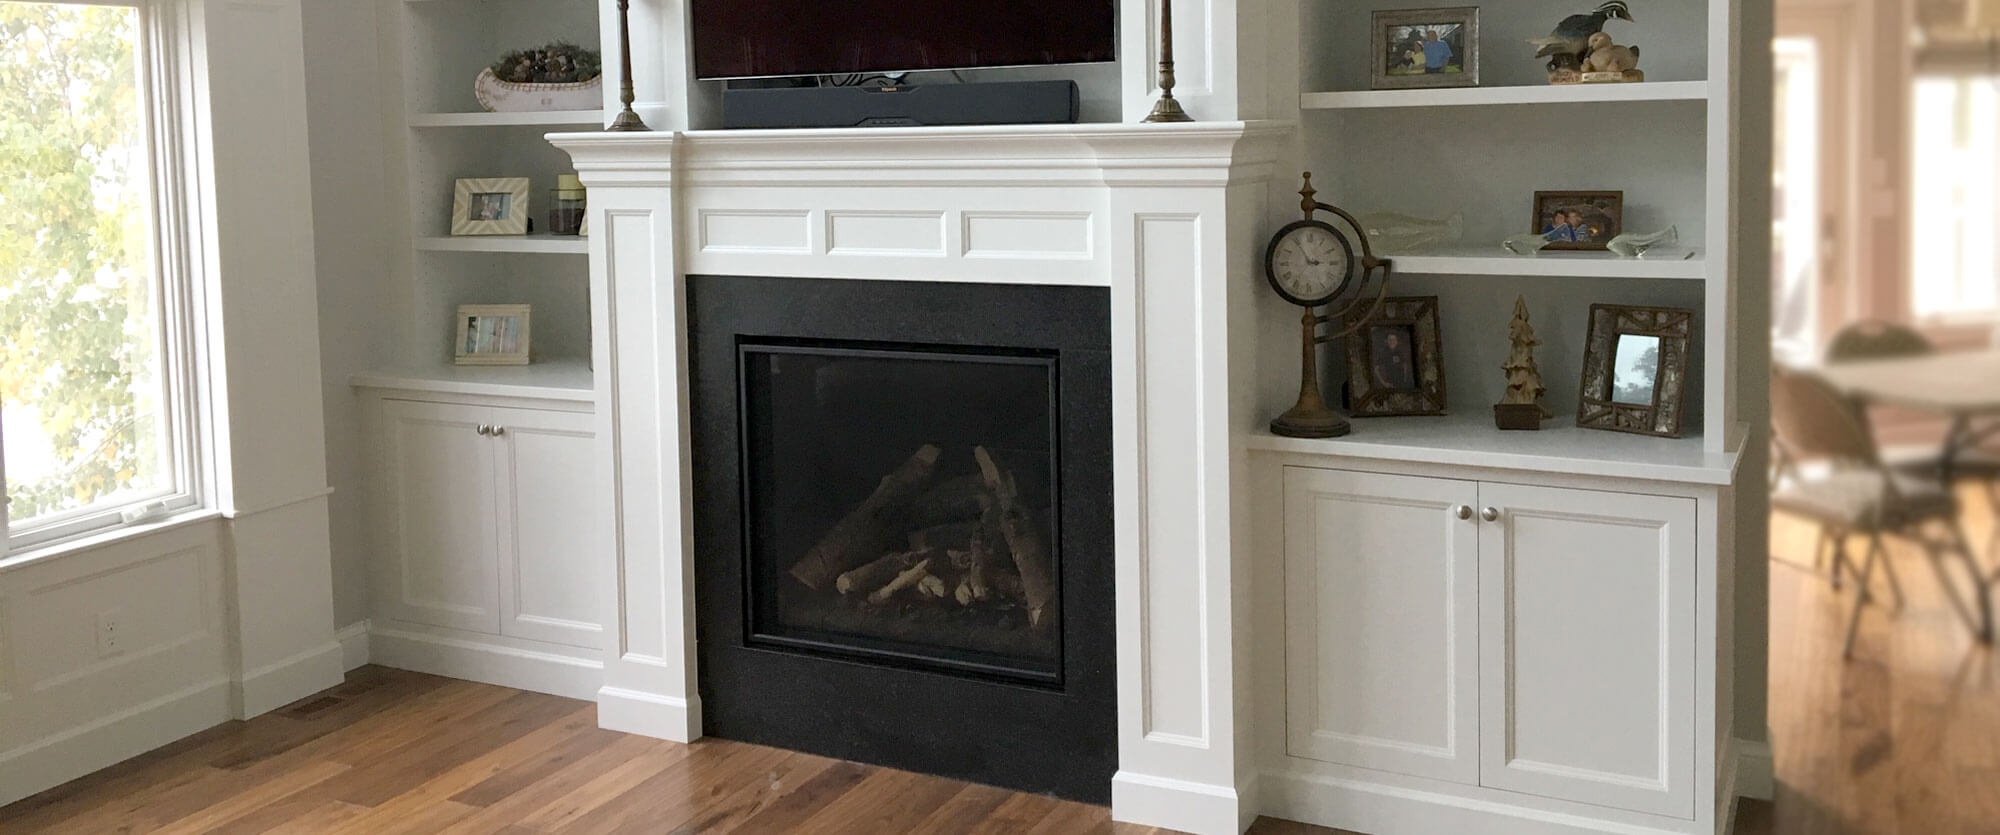 Custom fireplace surround with built in shelving on either side made of solid wood and painted white; designed, built, and installed by finewood Structures of Browerville, MN